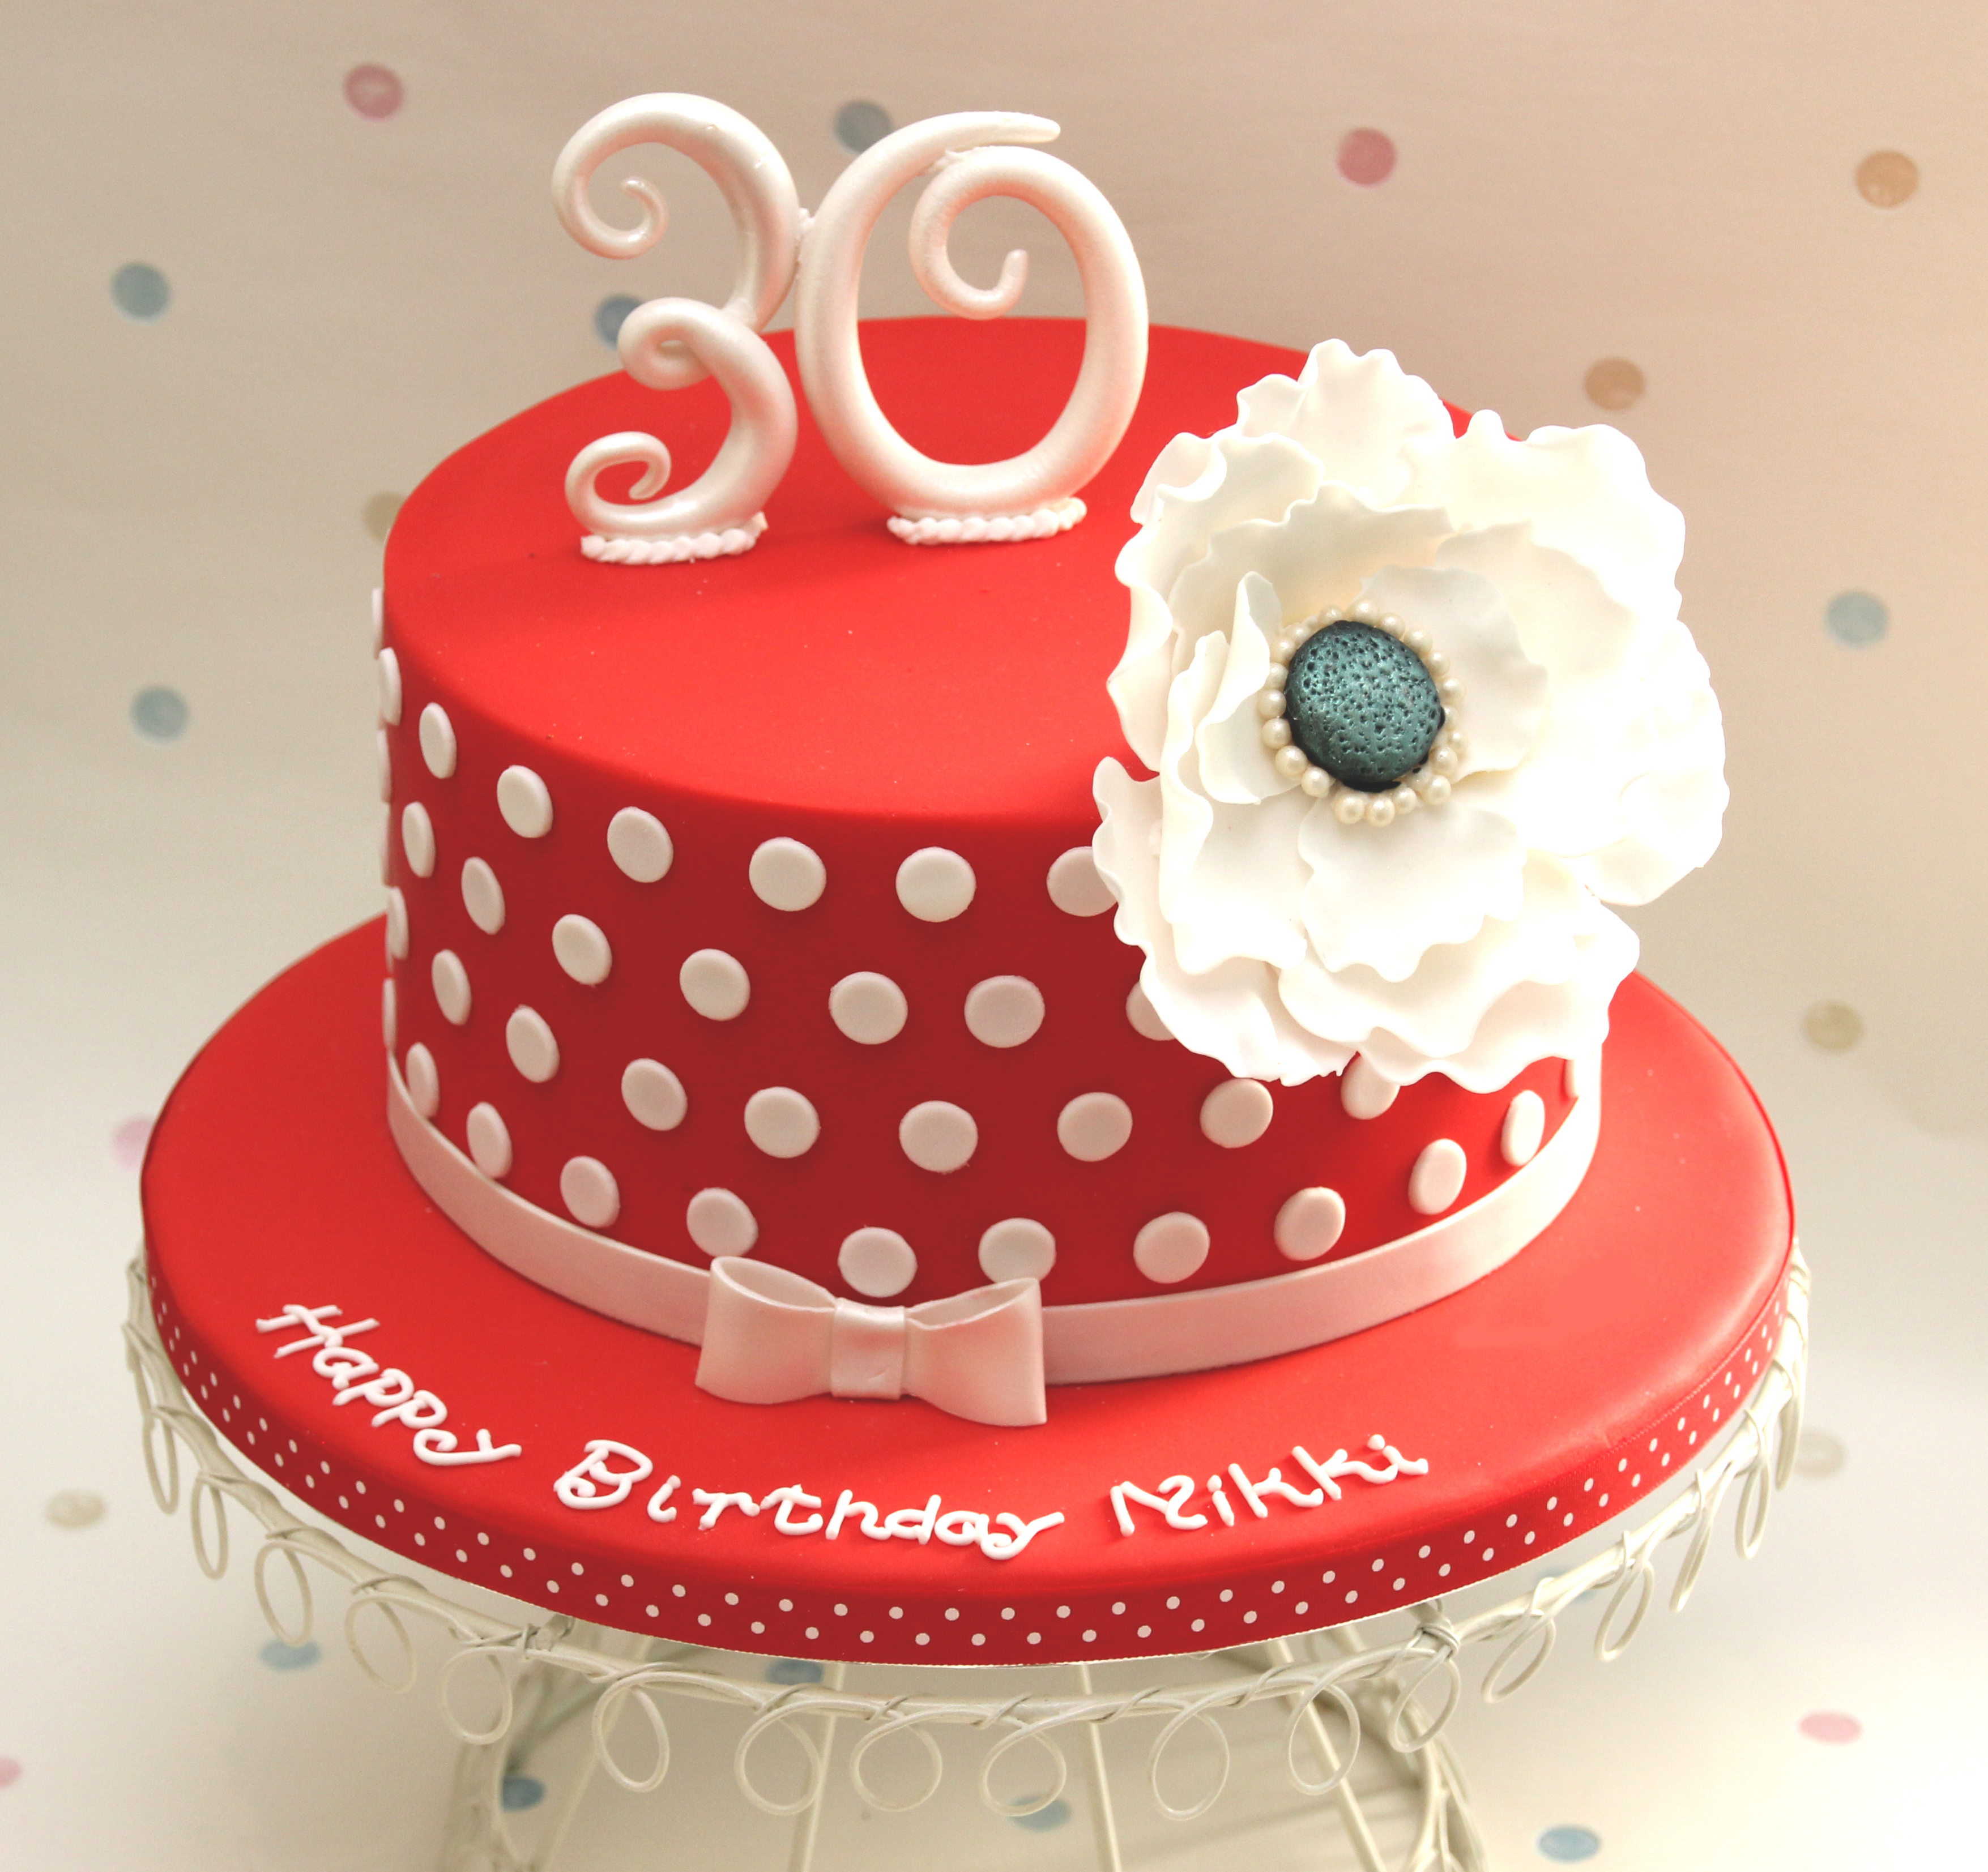 Incredible 10 Cakes White Red For A Friend Photo Red And White Polka Dot Funny Birthday Cards Online Alyptdamsfinfo